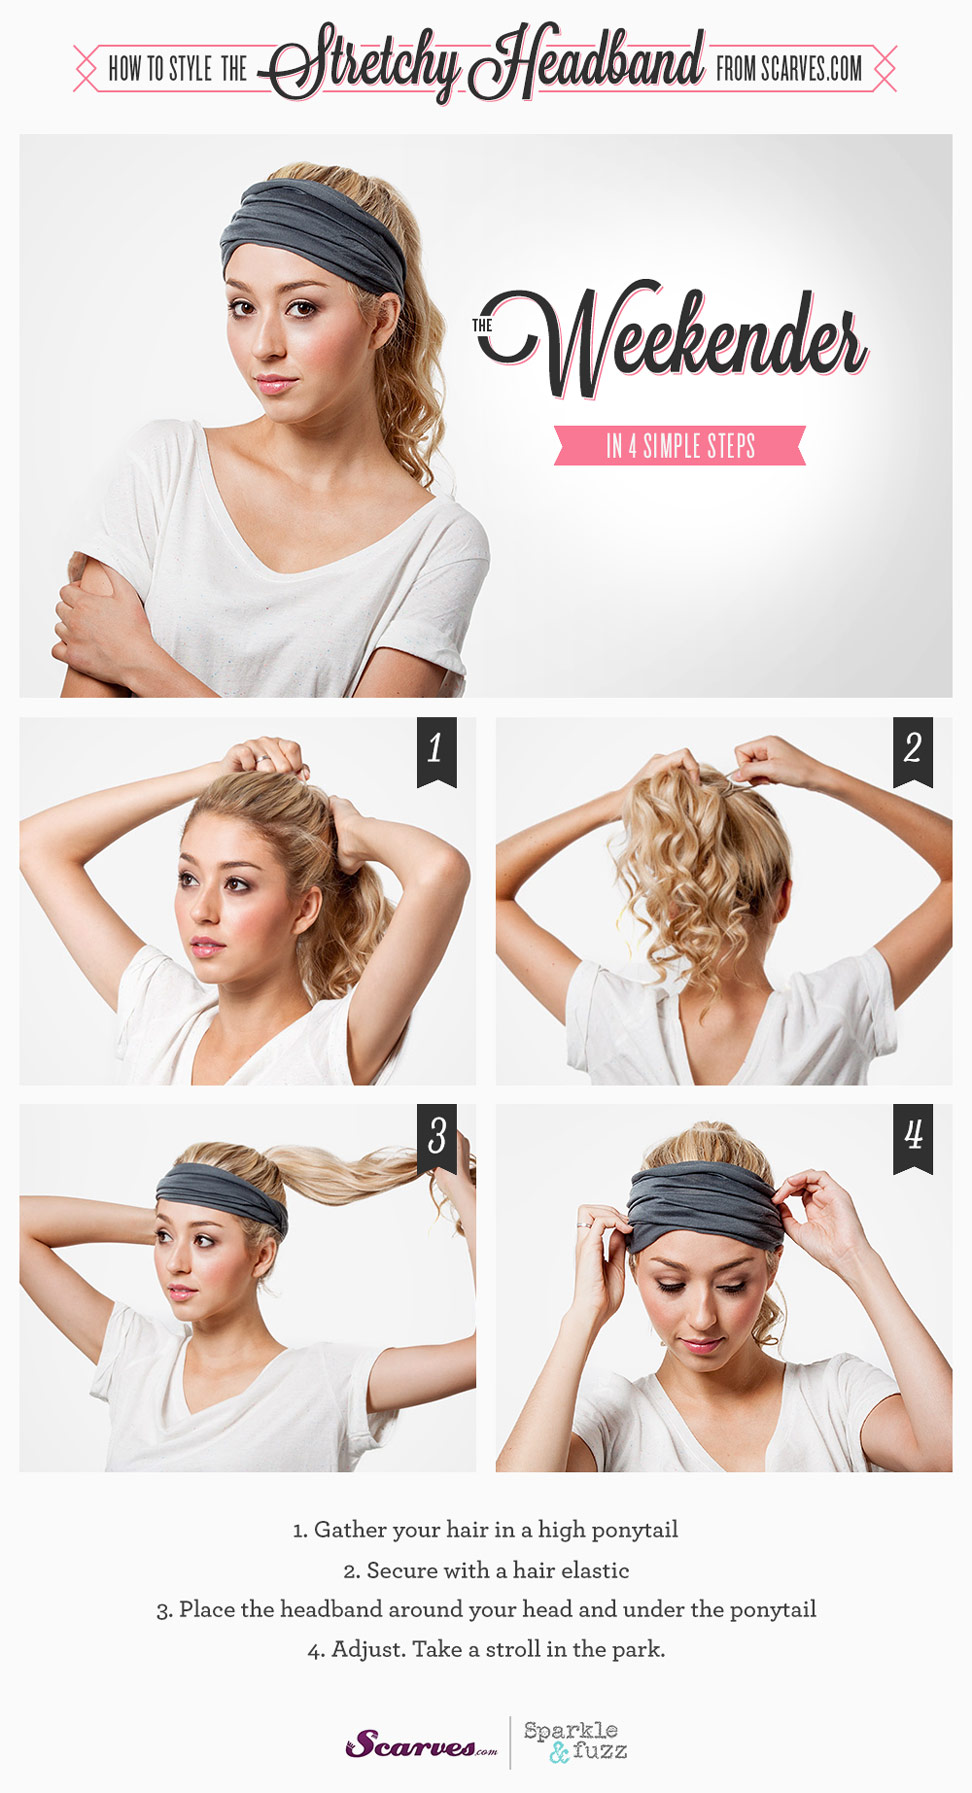 Fashion style How to scarf wear headband for woman